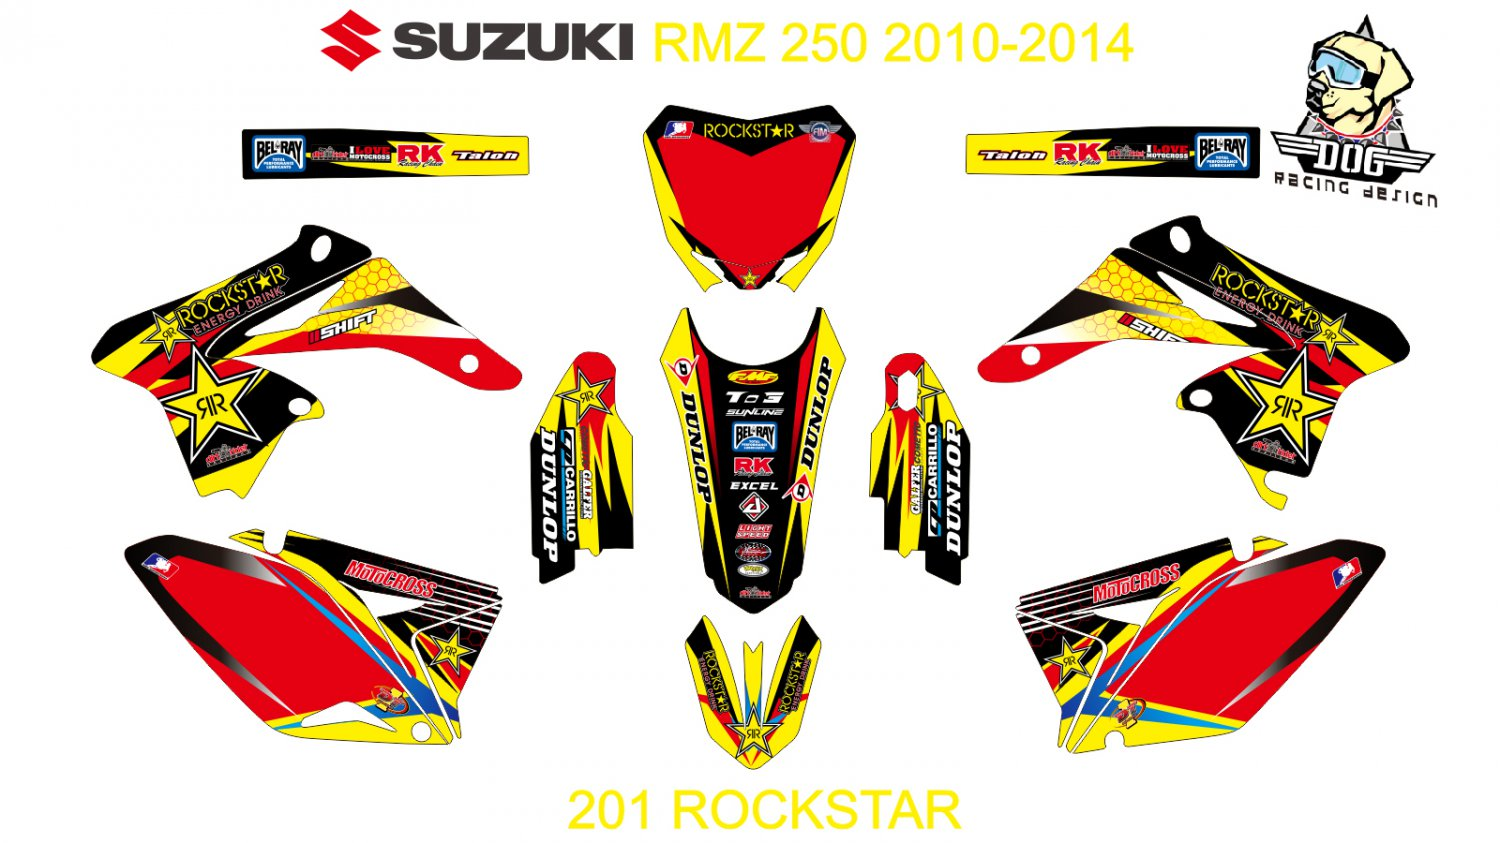 SUZUKI RMZ 250 2010-2014 GRAPHIC DECAL KIT CODE.201